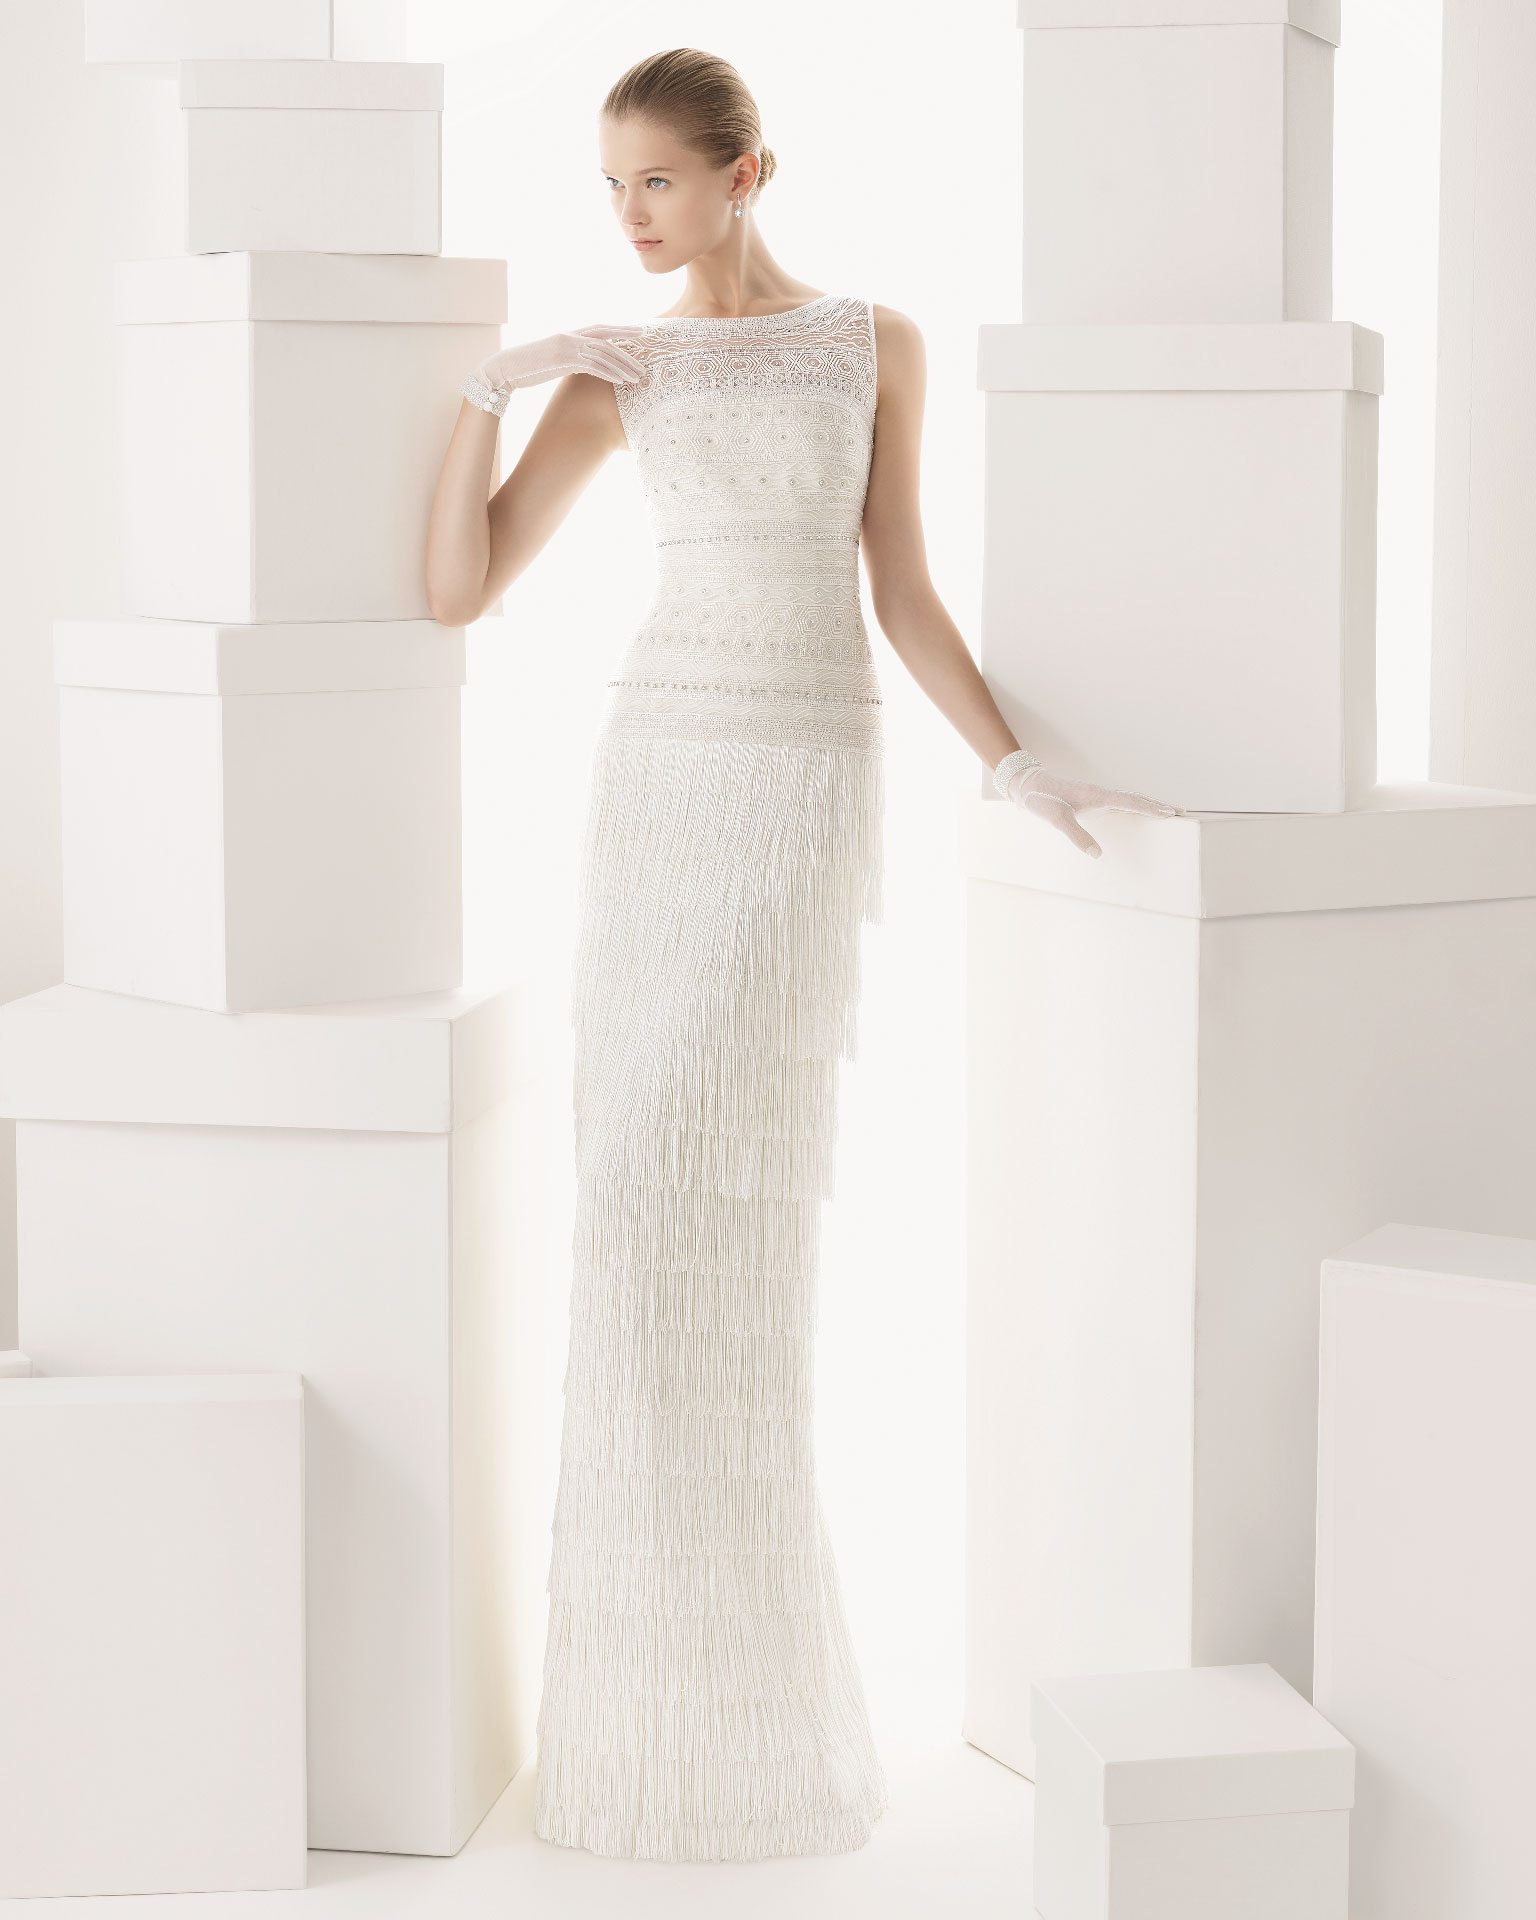 The Rosa Clara 2014 Wedding Collection is Exquisitely Unique